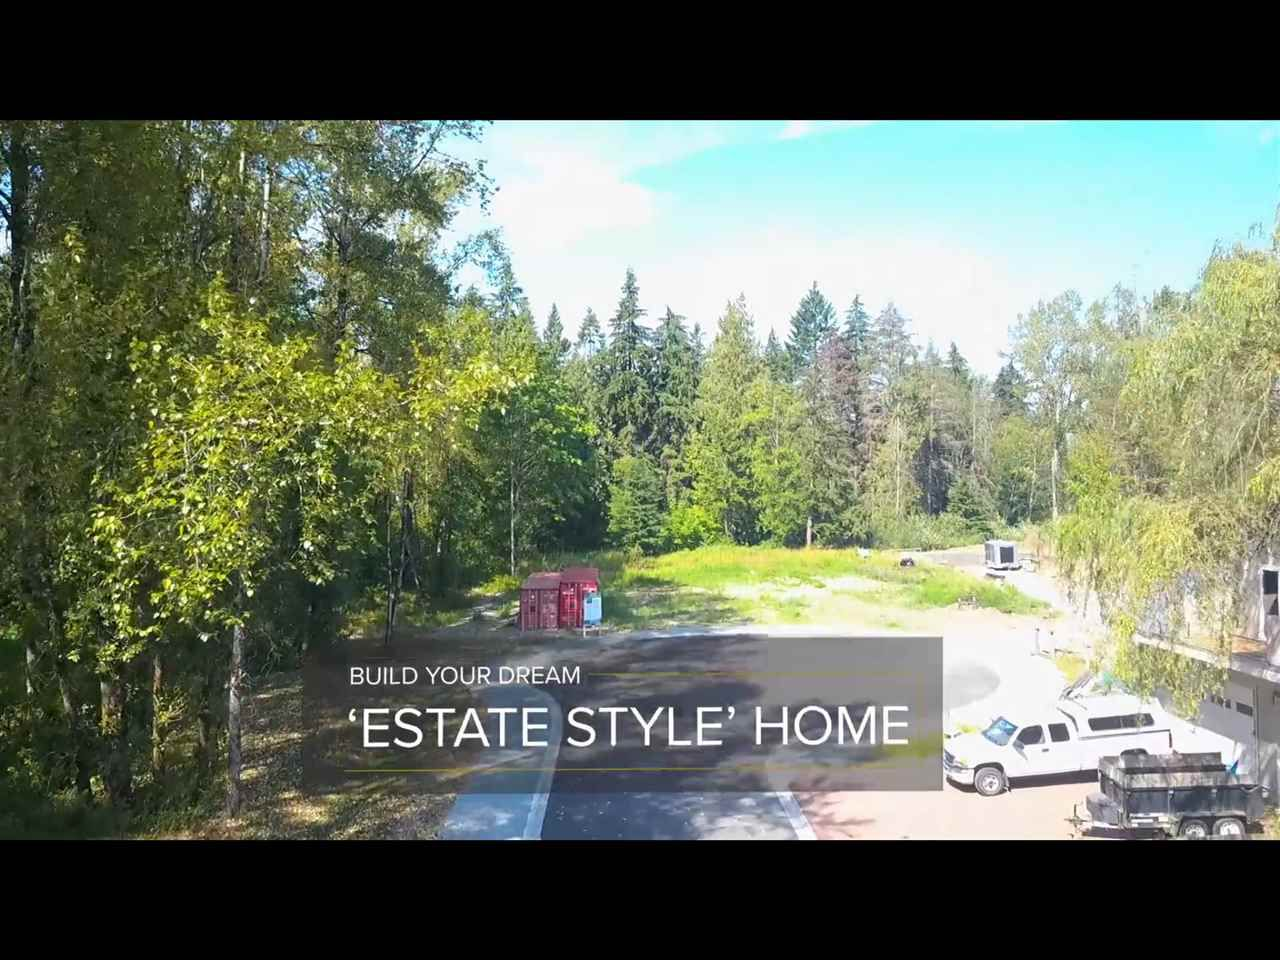 Main Photo: 7457 228 Street in Langley: Salmon River Home for sale : MLS®# R2215780